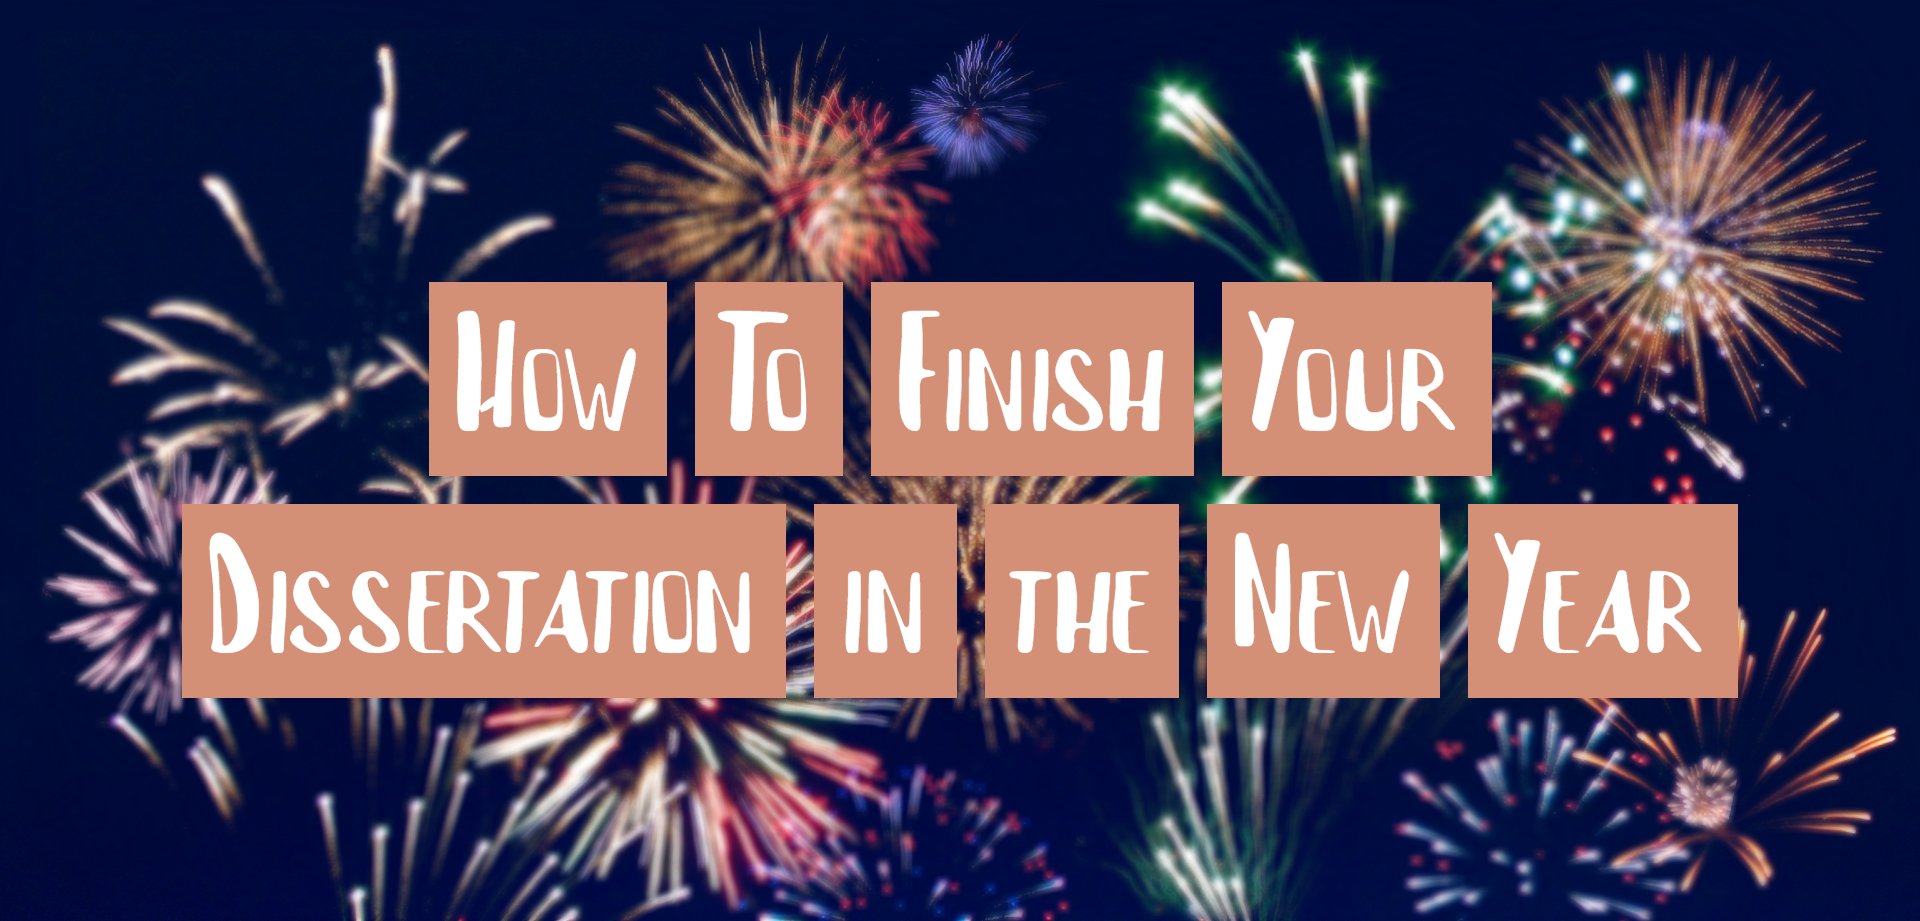 How To Finish Your Dissertation in the New Year